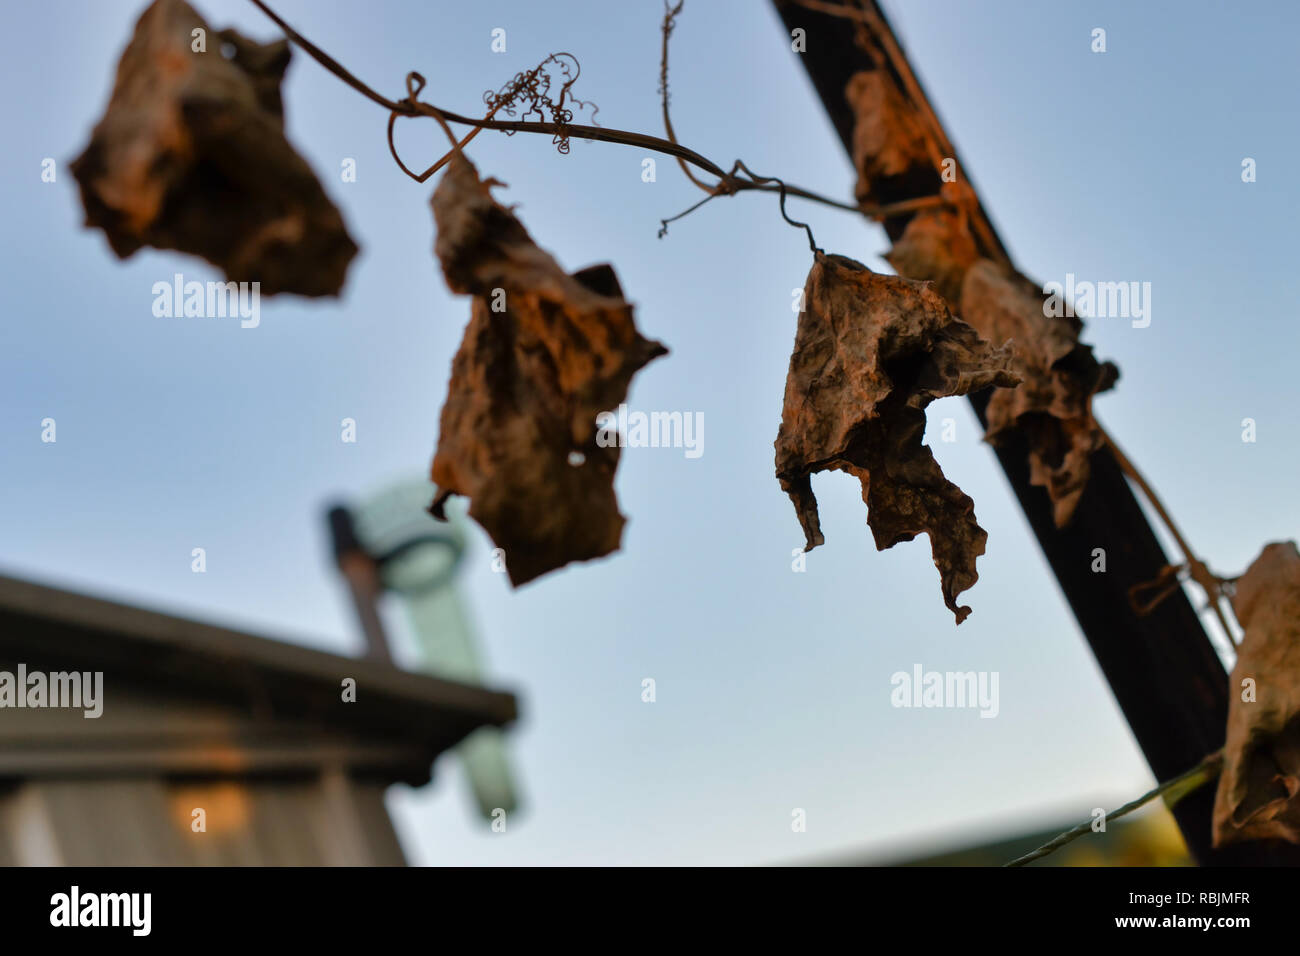 dead vine with empty rain gauge during drought rural Australia - Stock Image